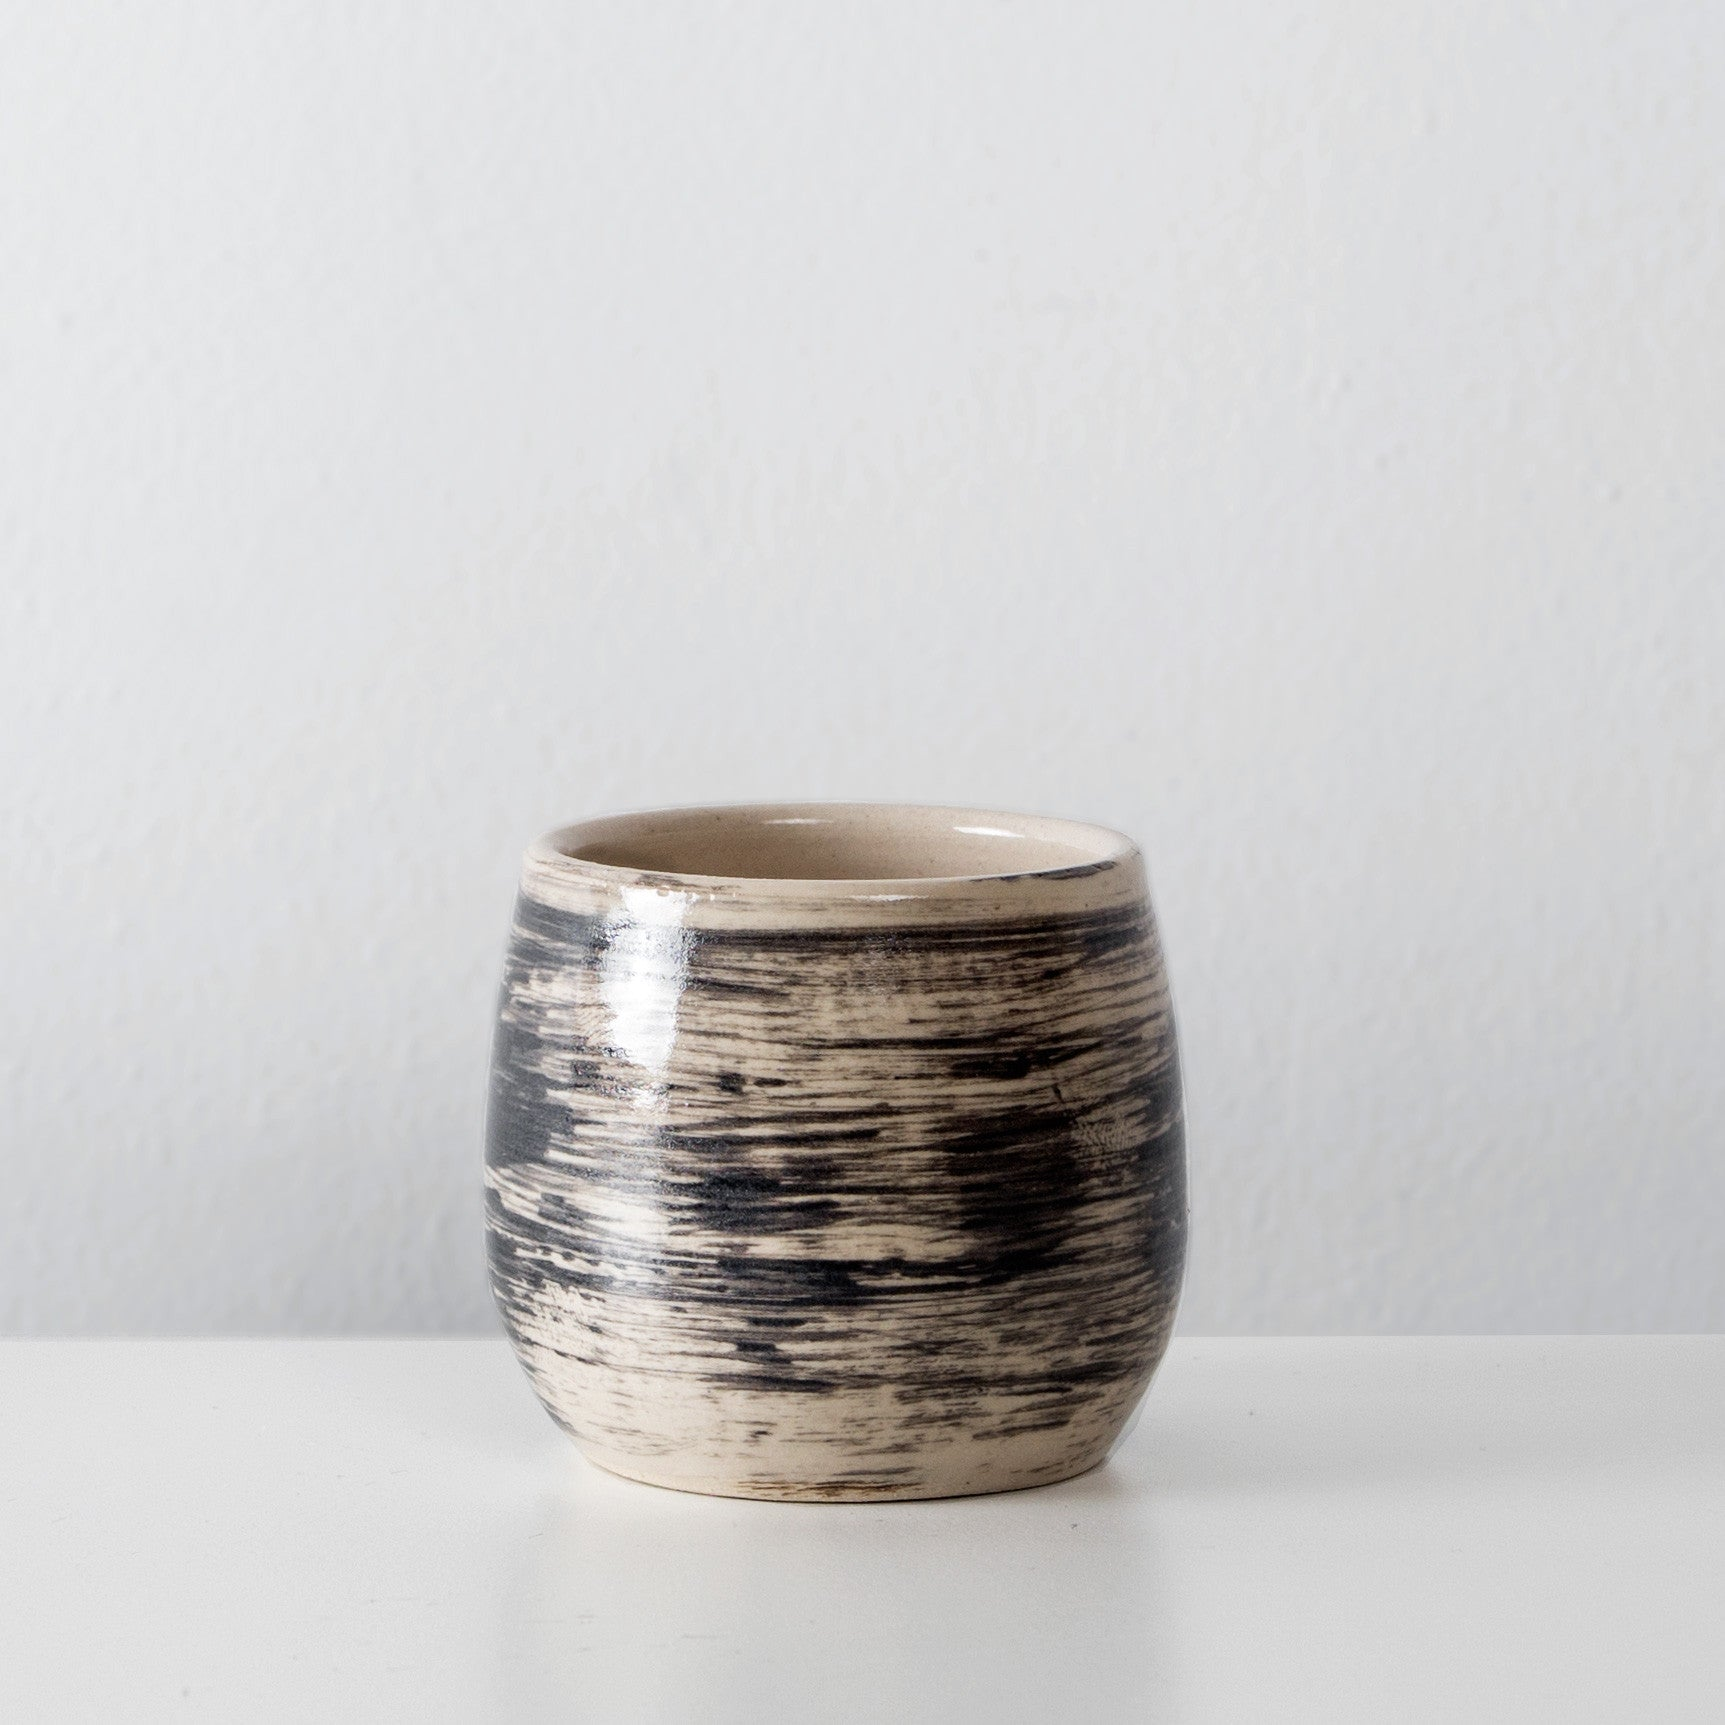 Handmade Charcoal ceramic espresso cup By SkandiHus (last 1)